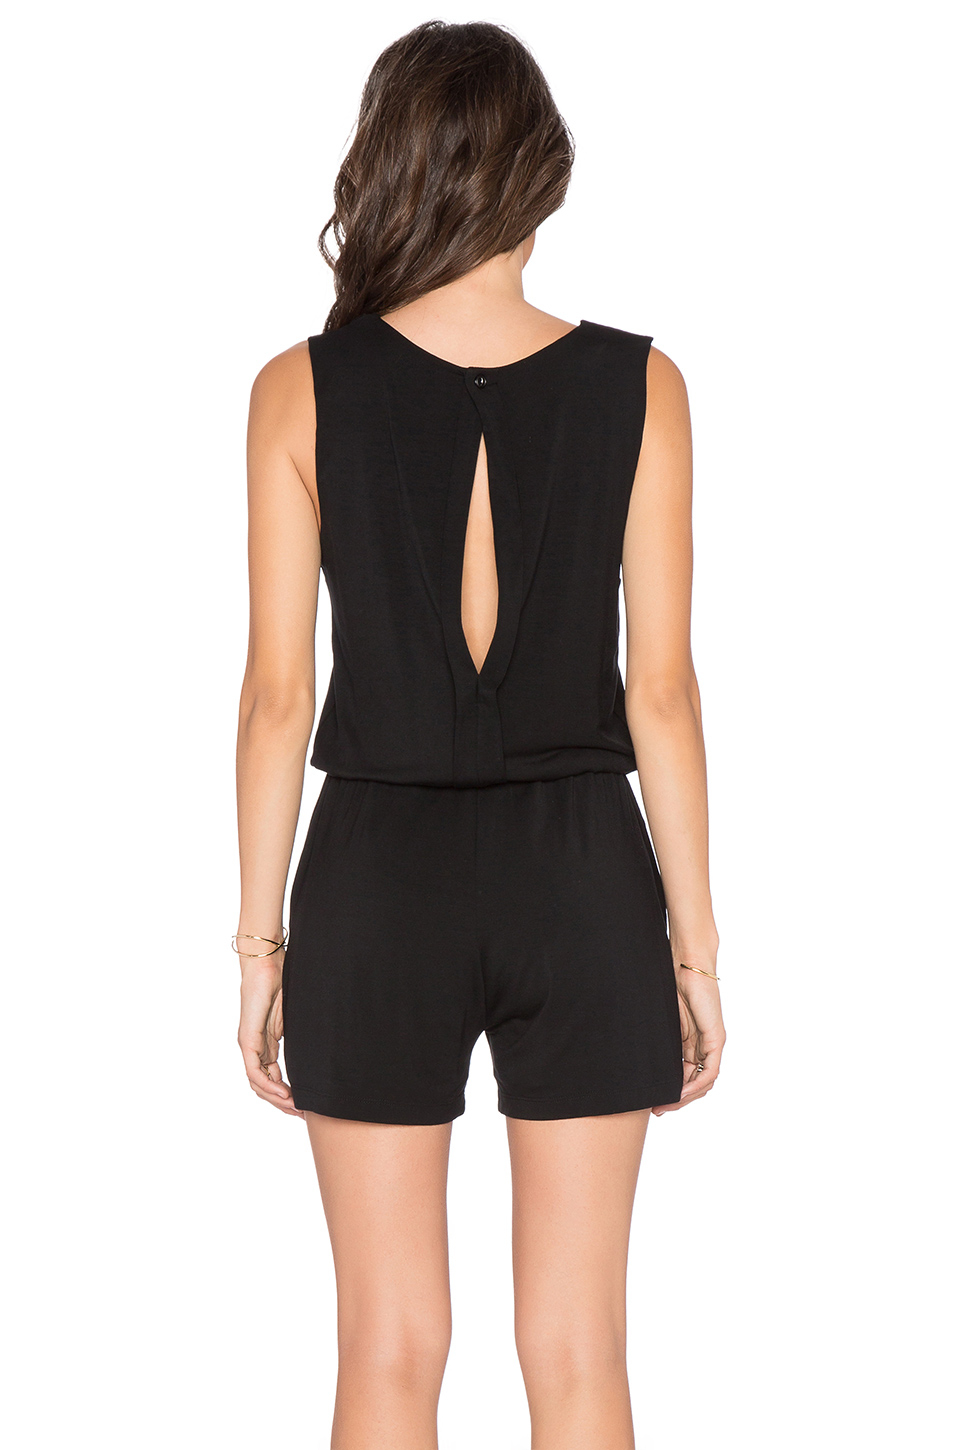 66834536095 Lyst - Blq Basiq Open Back Romper in Black